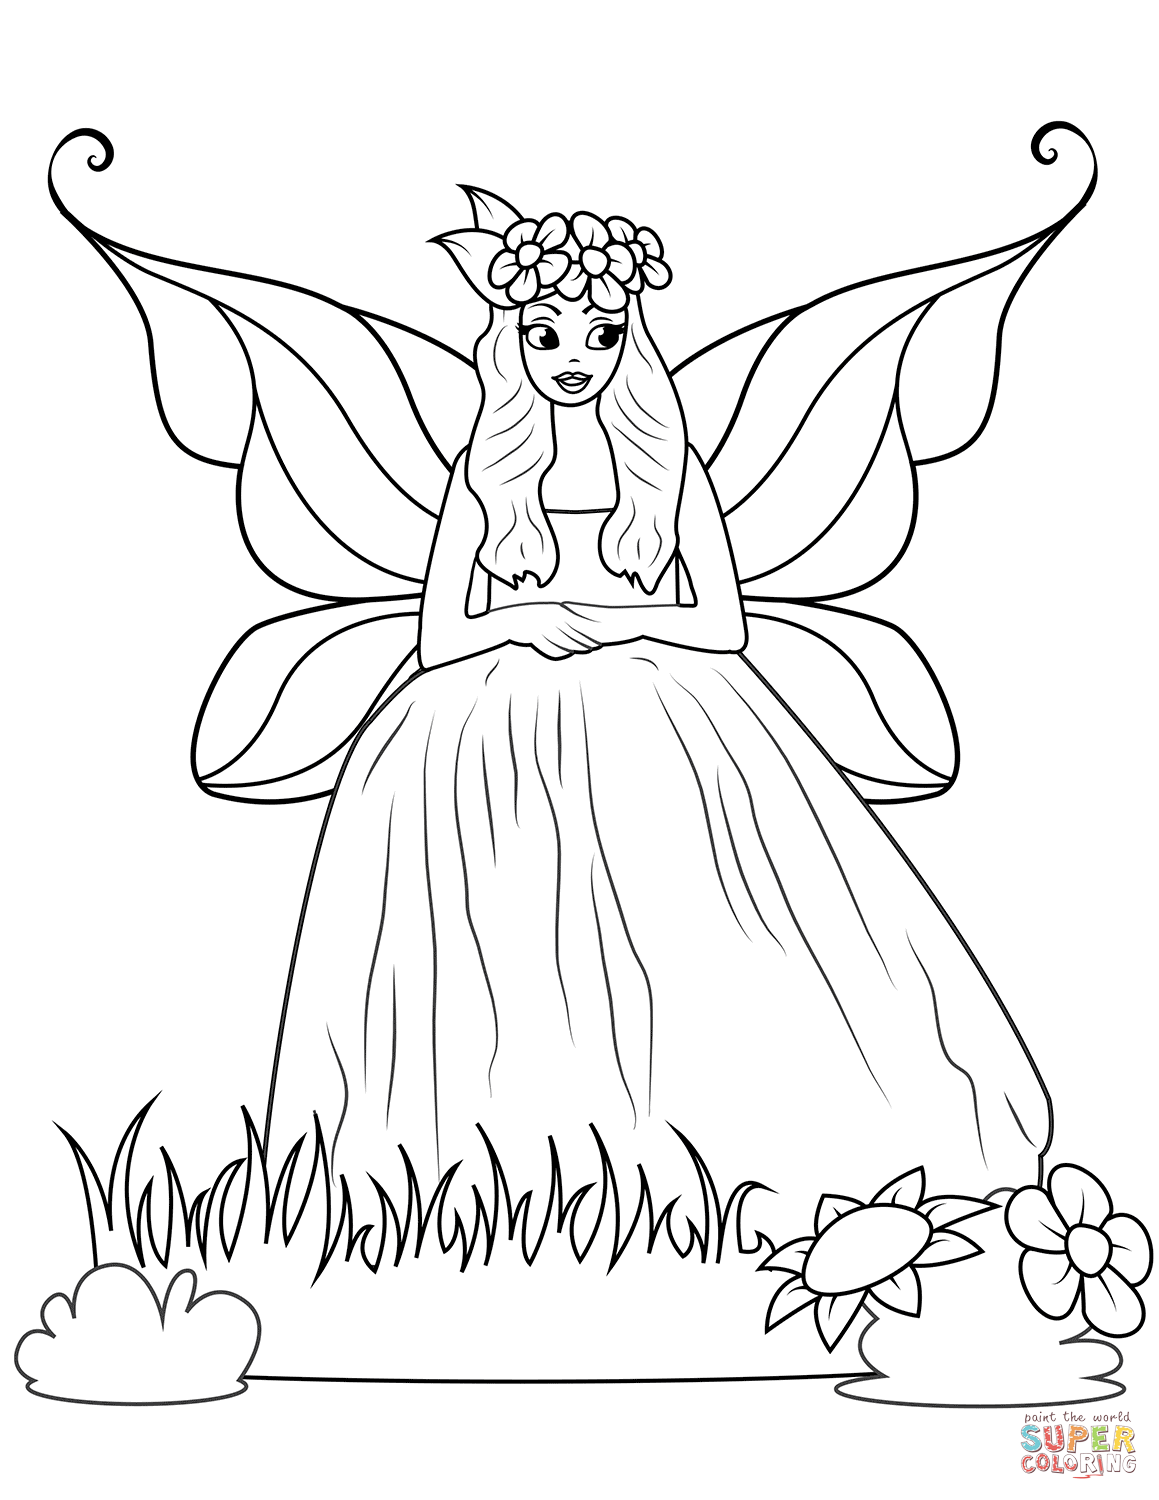 Fairy In Ball Gown Dress Coloring Page Free Printable Coloring Pages